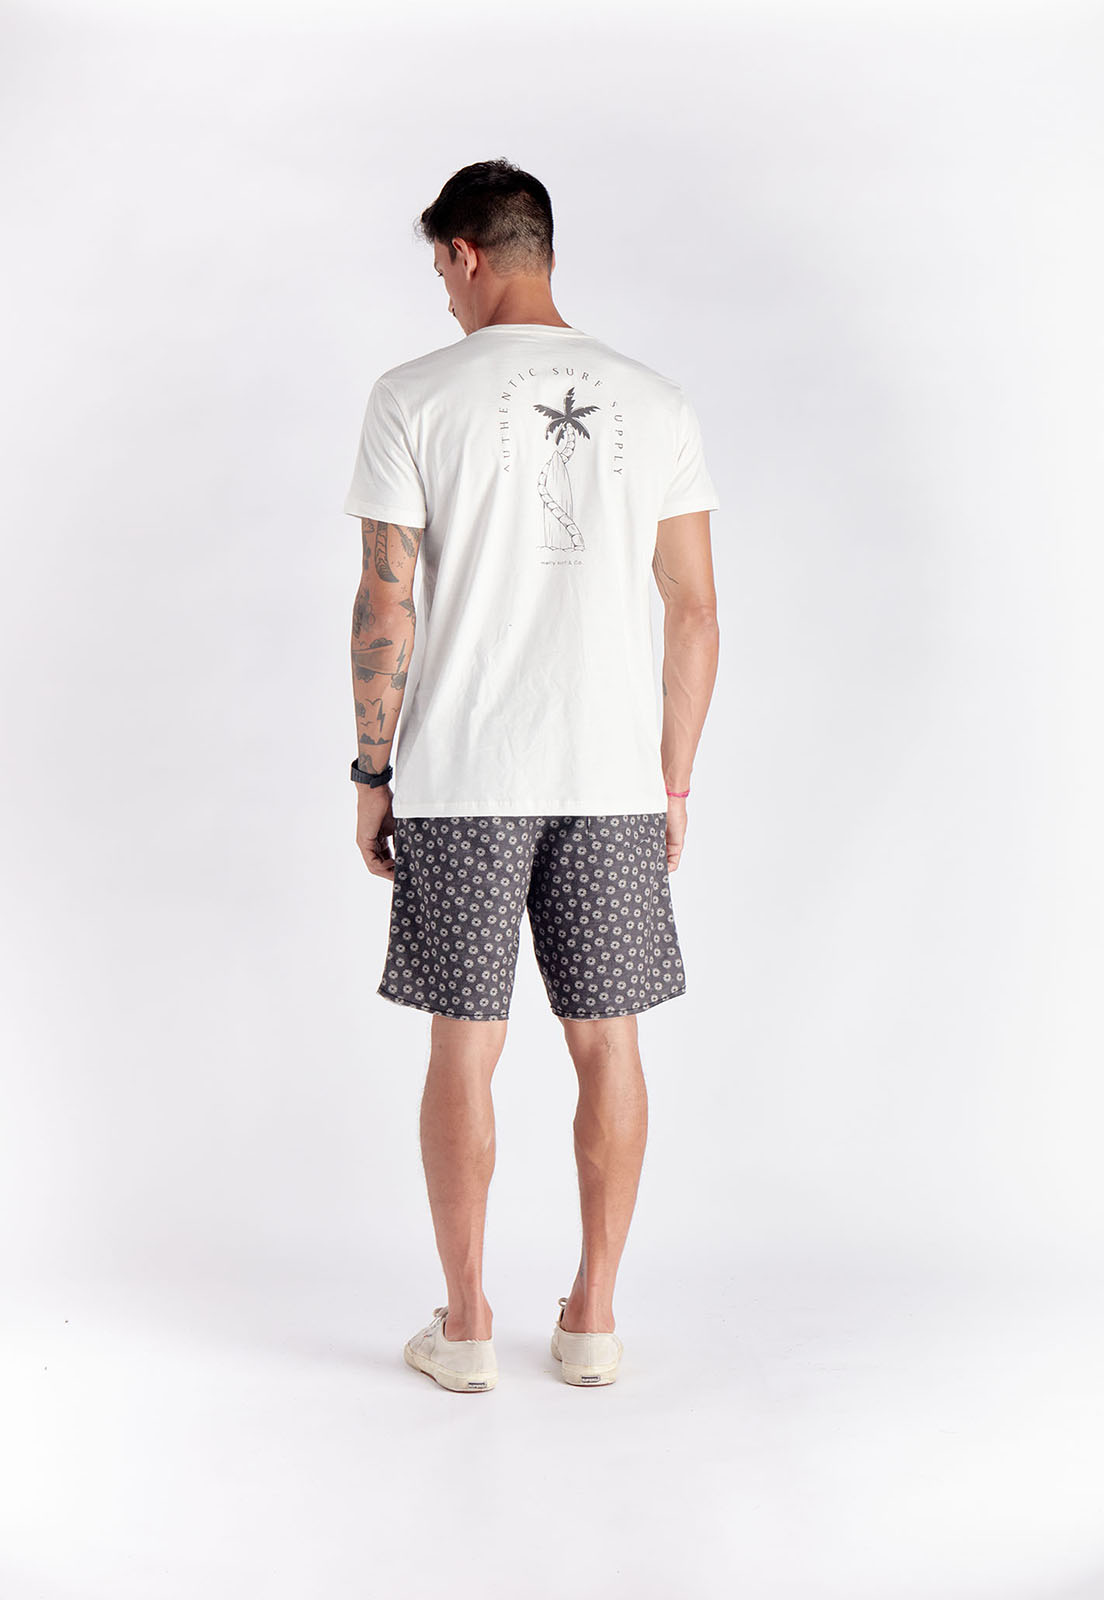 T-shirt Surf Supply Branca Melty  - melty surf & Co.